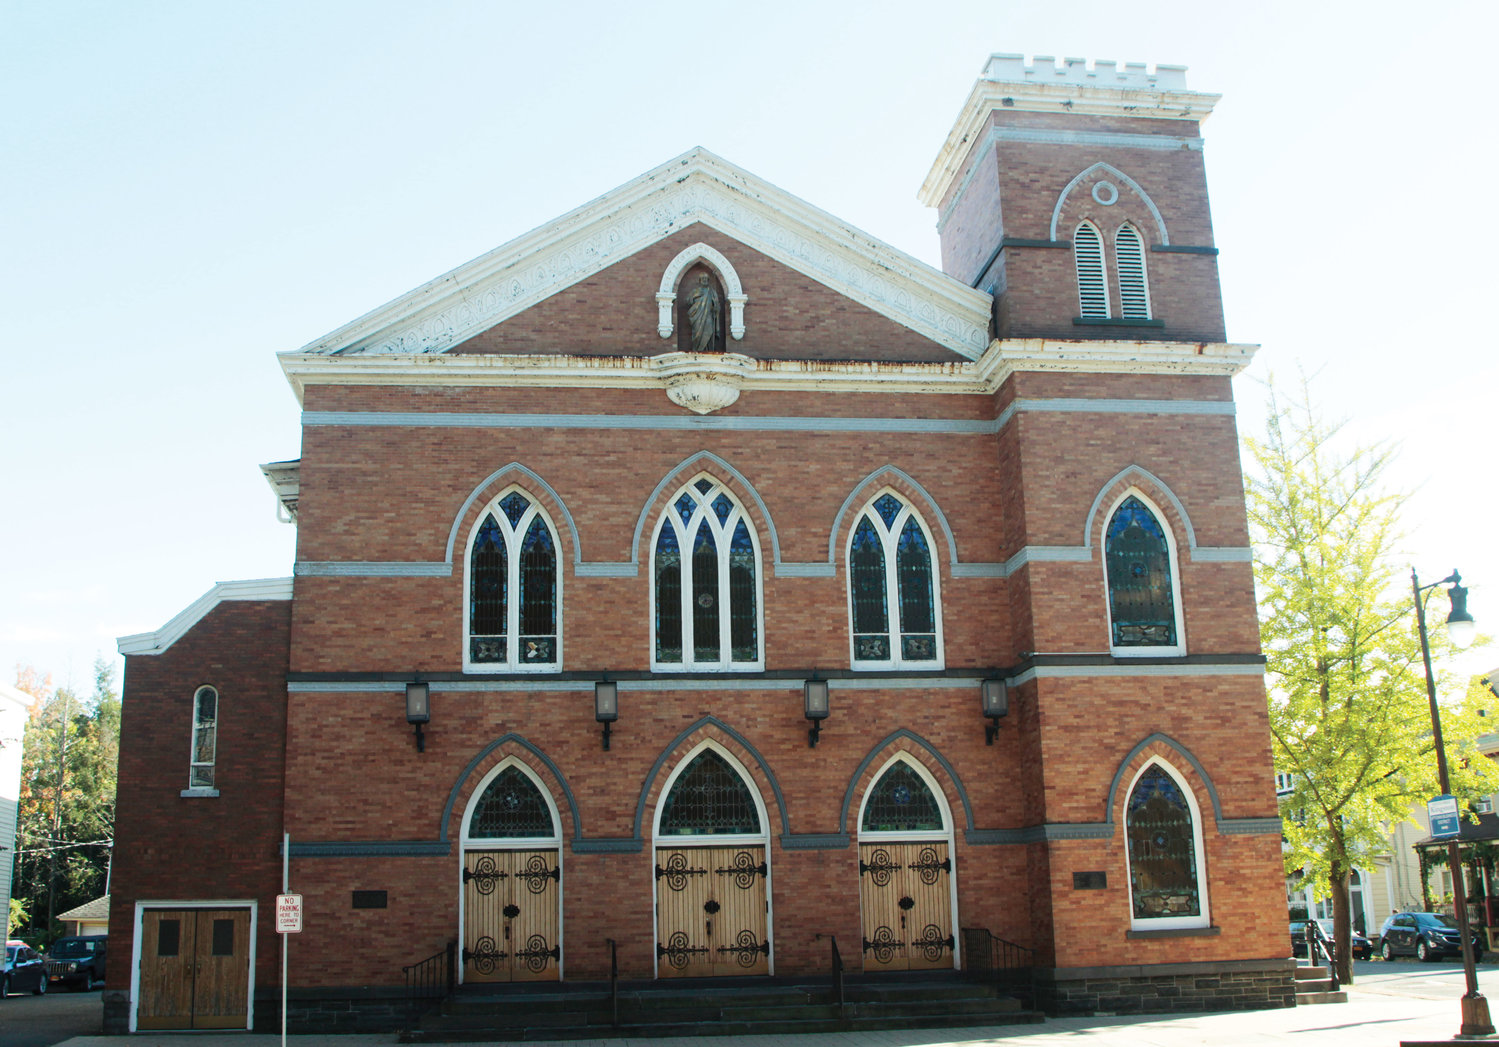 The church served as the Old Dutch Church and later an armory during the Civil War before it was sold and became St. Joseph's Church.